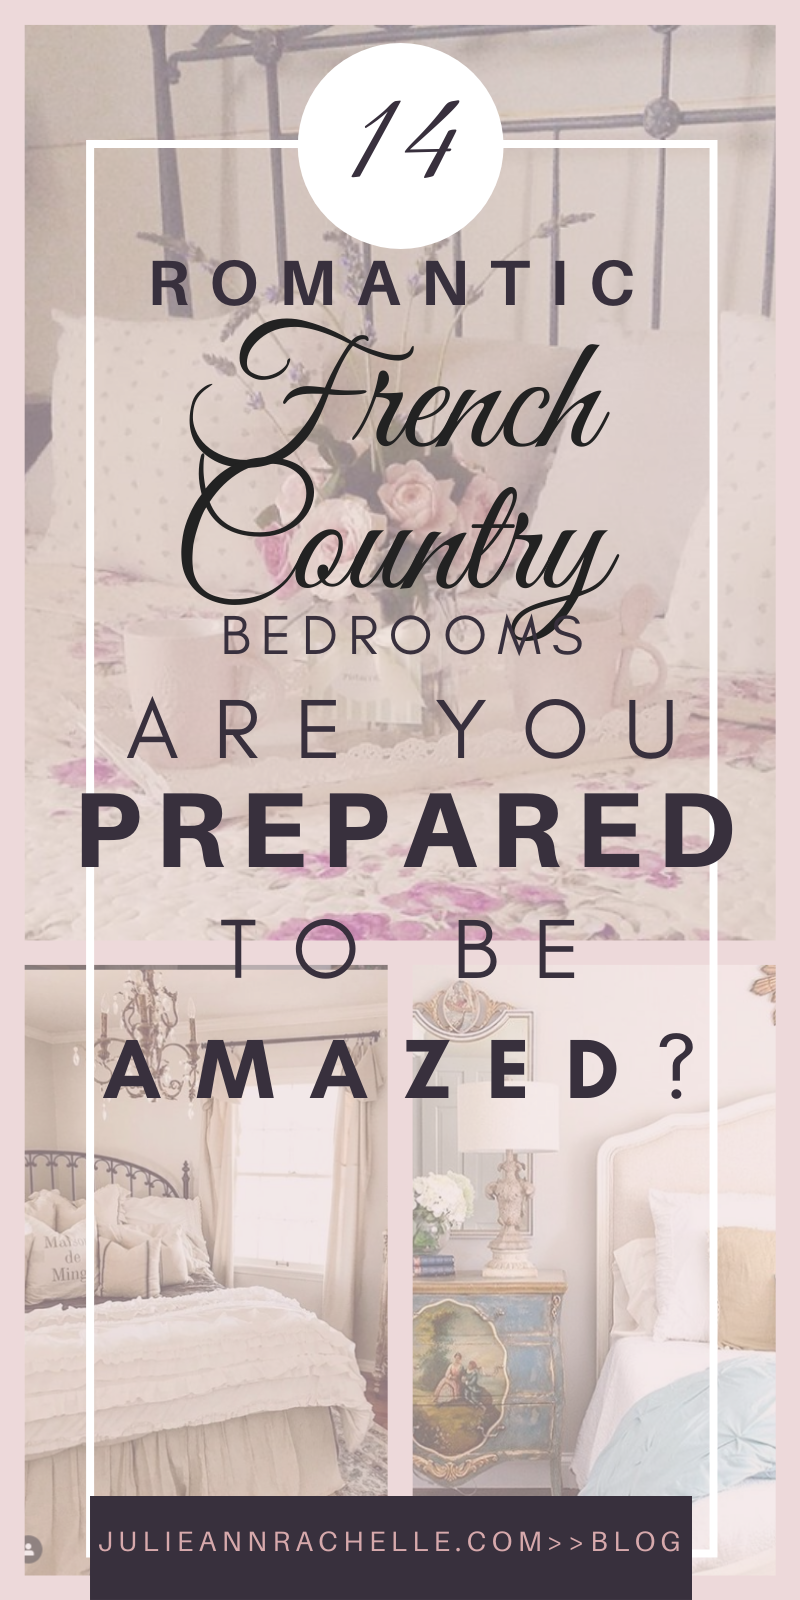 Romantic French Country Bedrooms Are You Prepared To Be Amazed Online Virtual Interior Design Julie Ann Rachelle